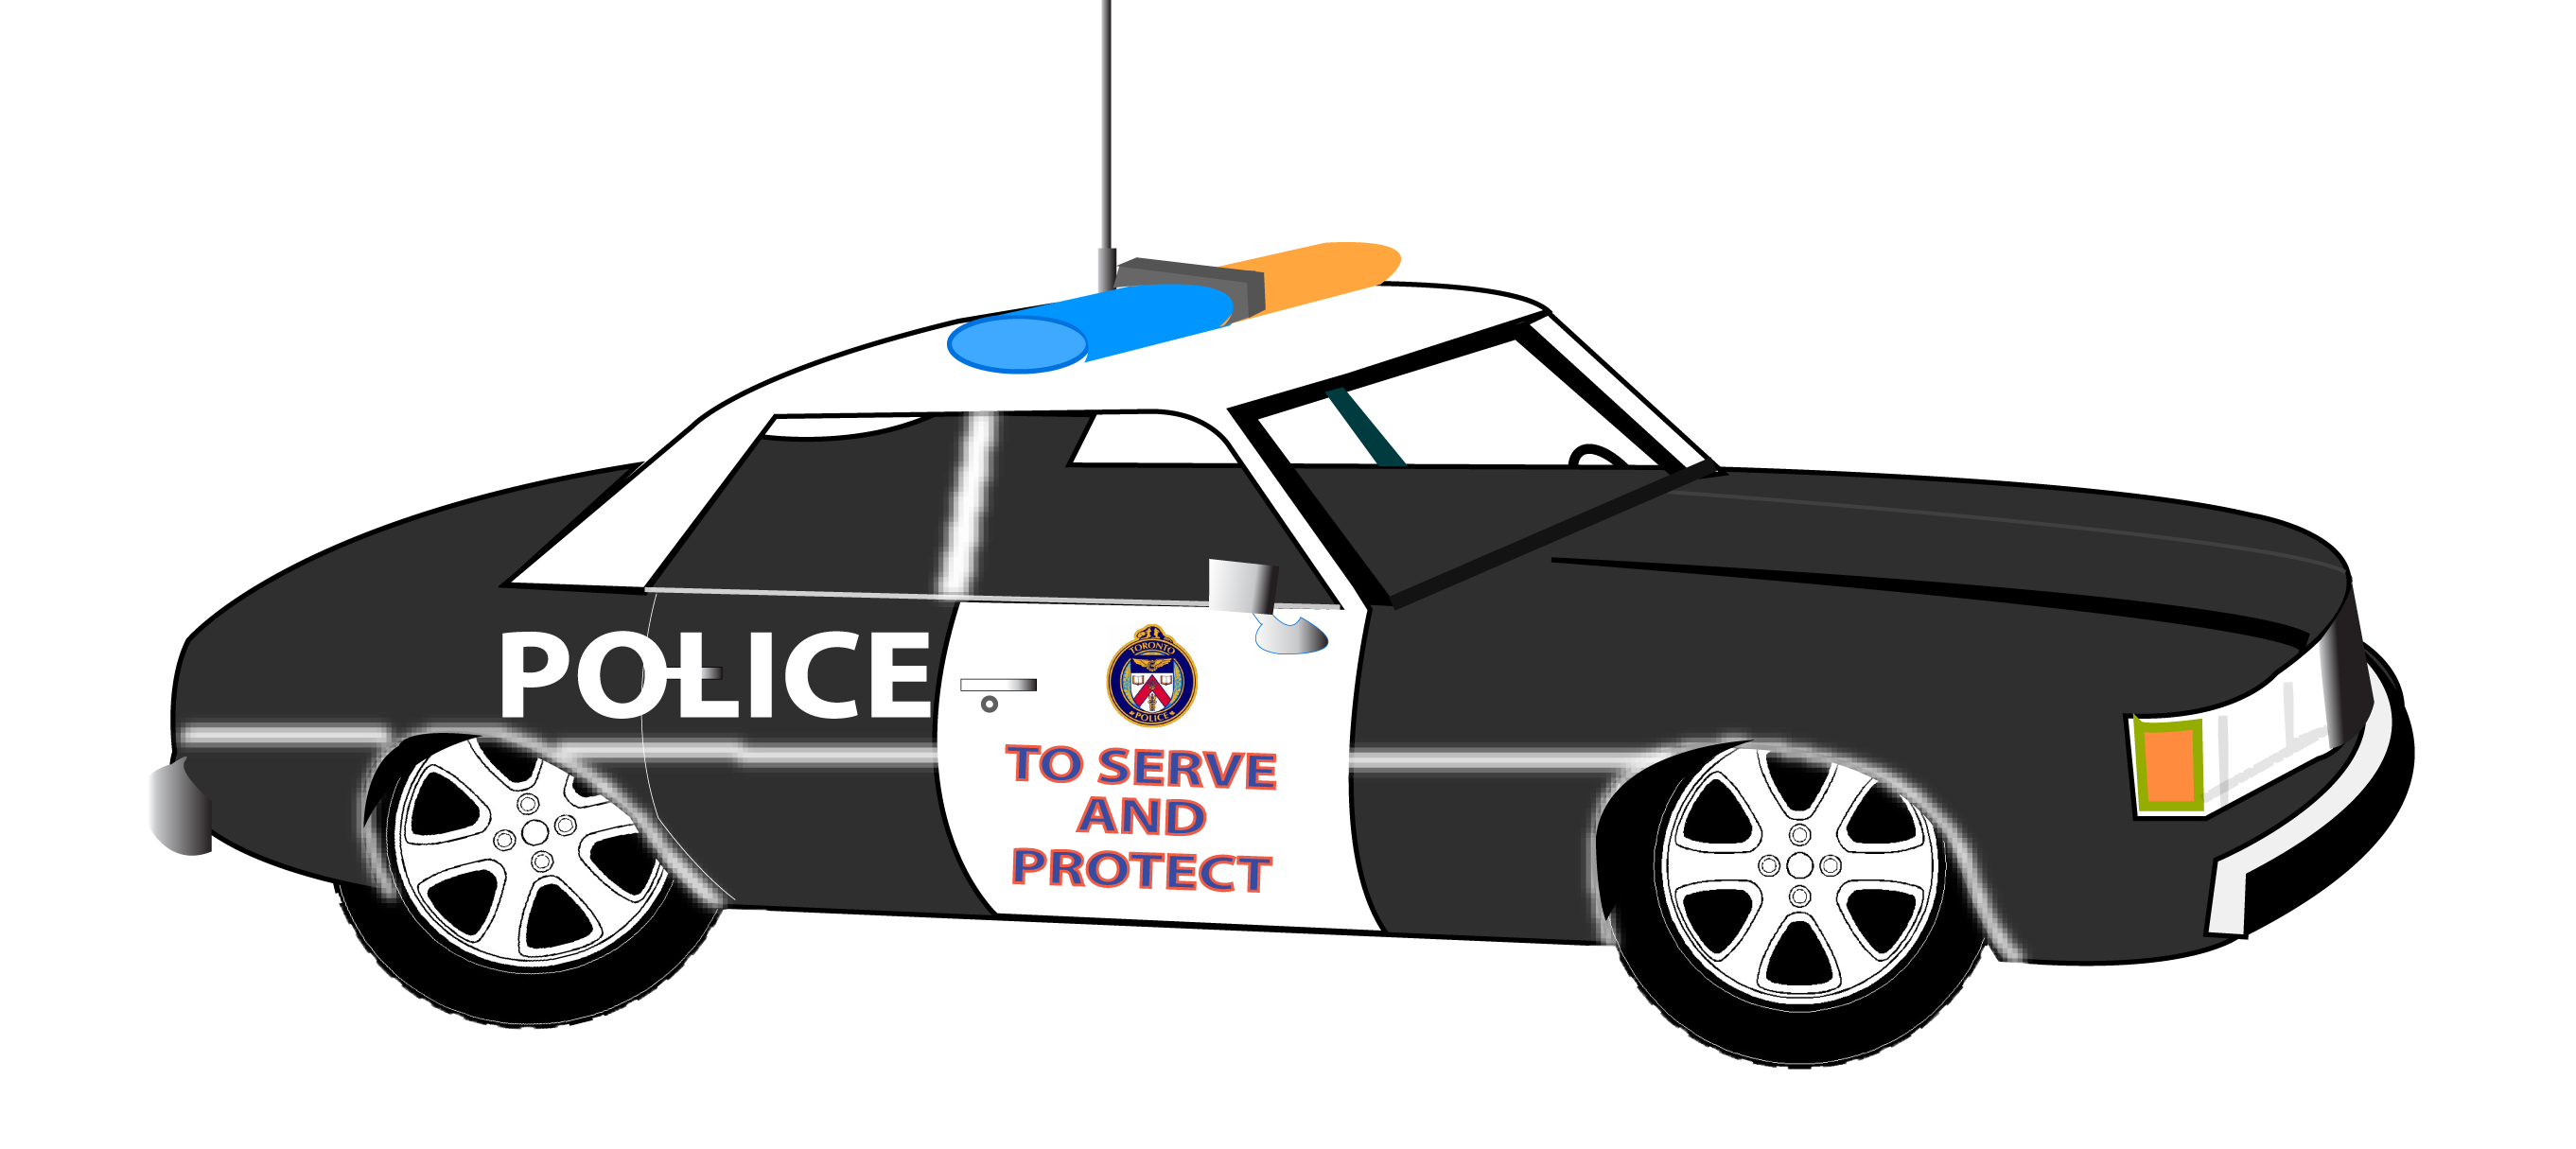 Patrol clipart police vehicle. Officer pencil and in